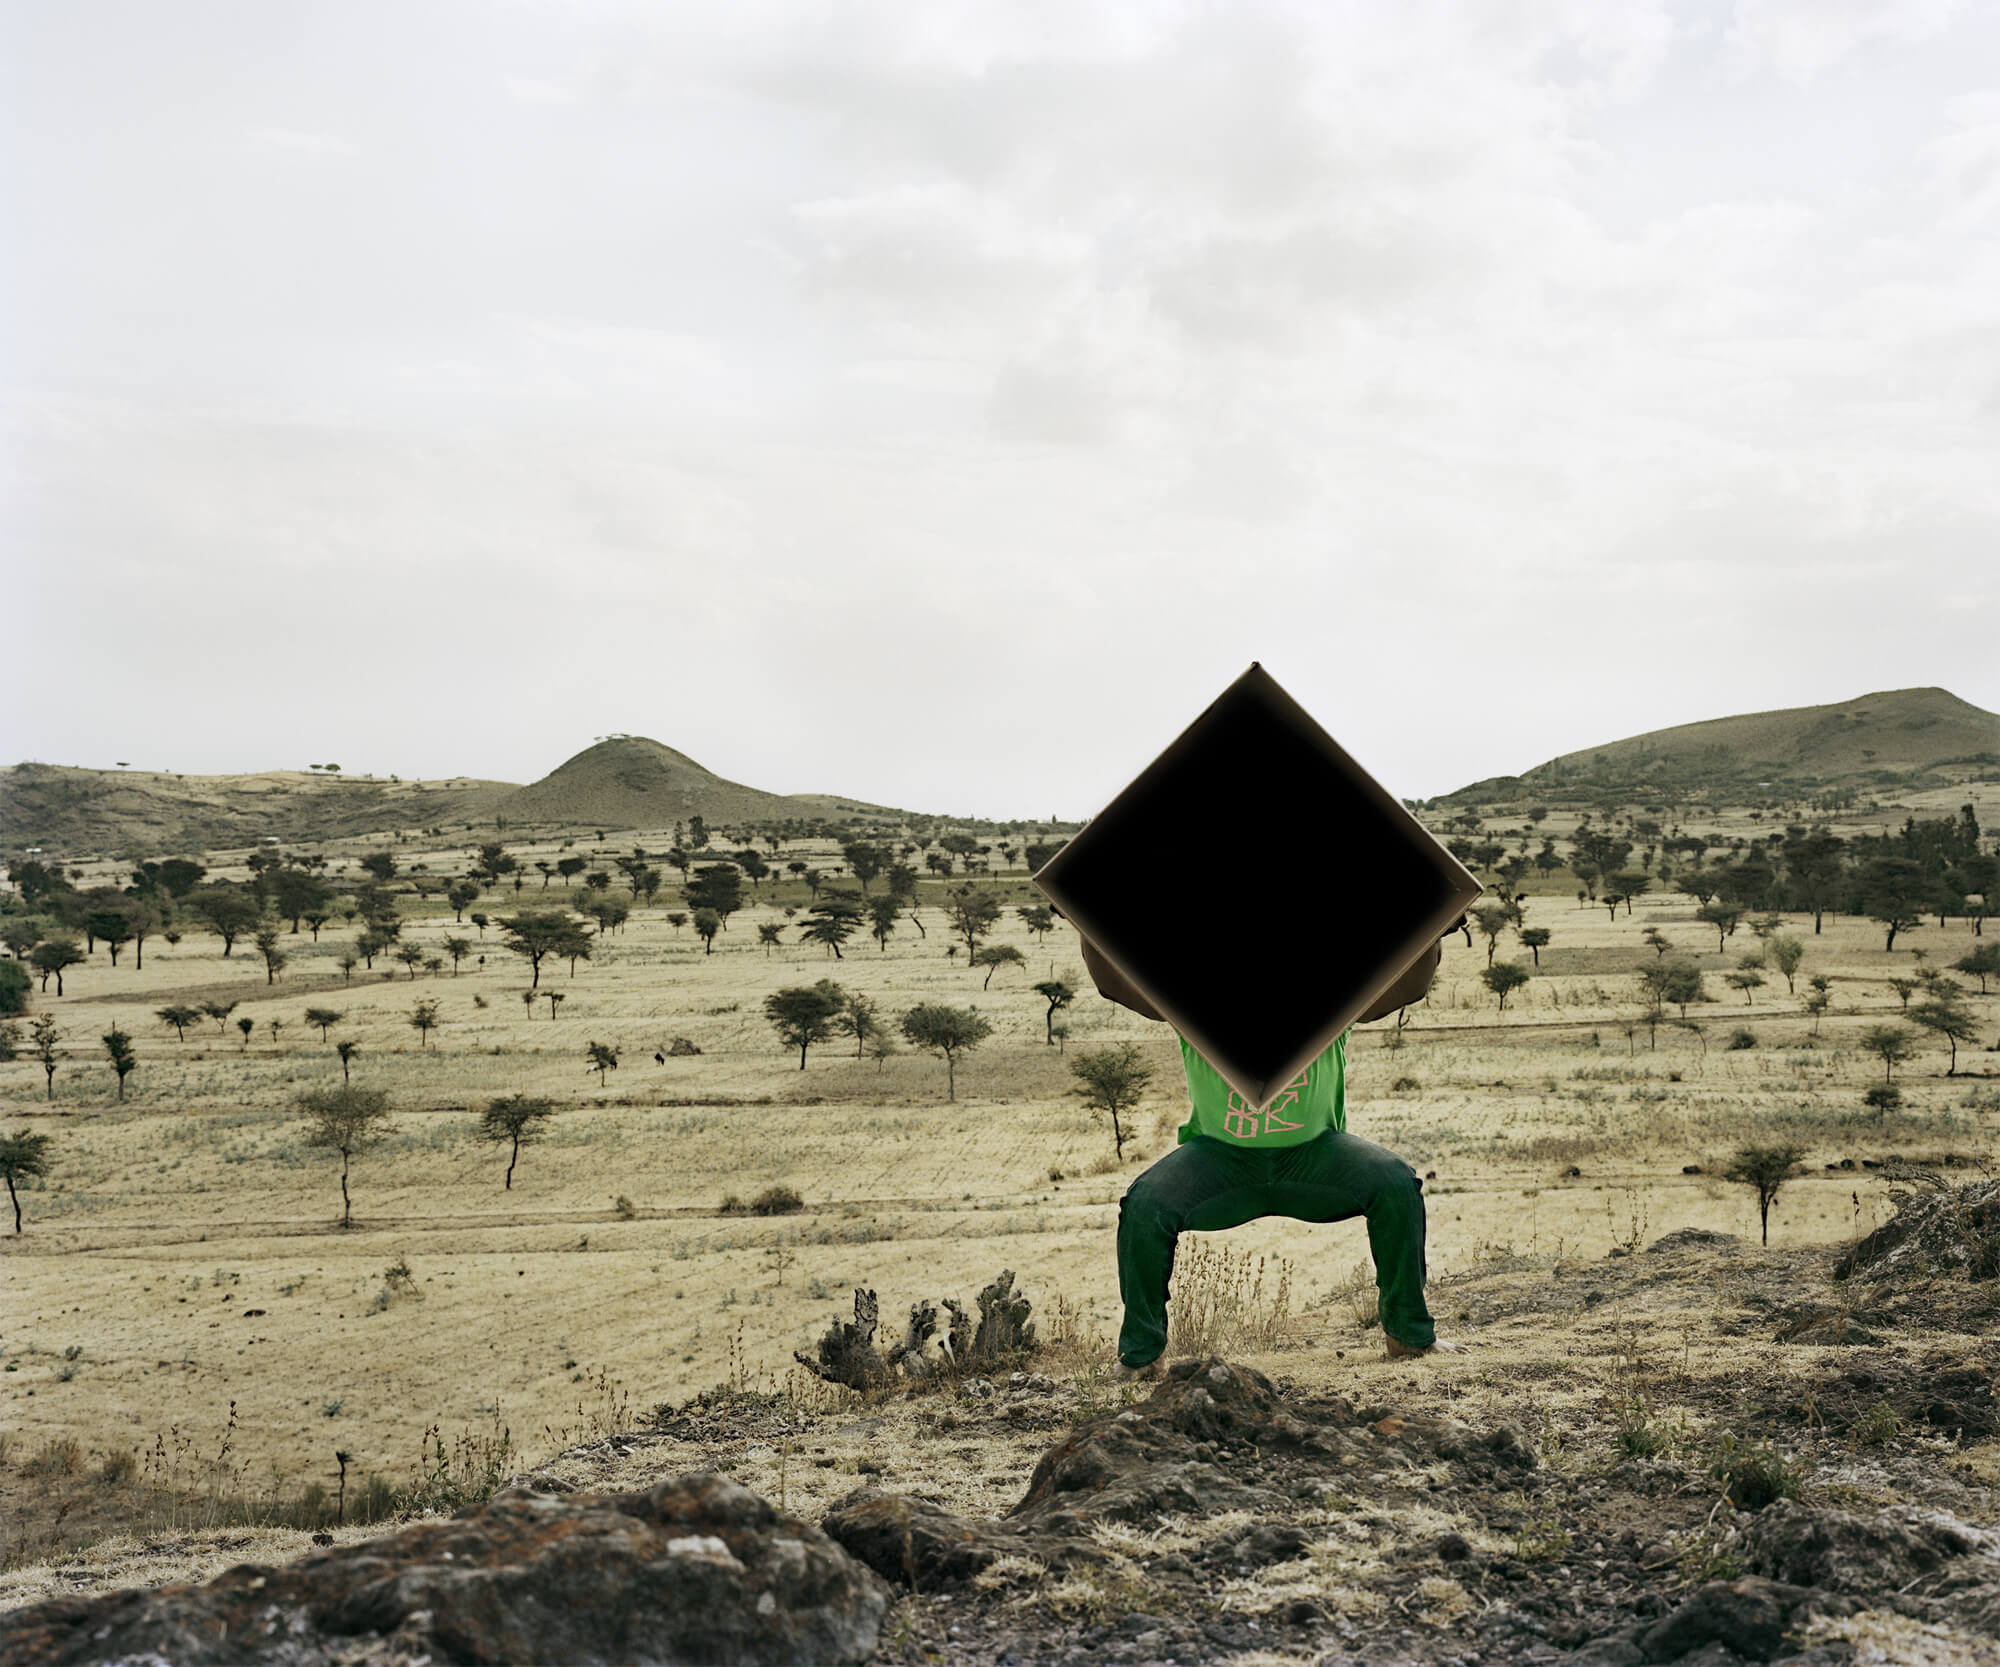 Single Cube Formation No.4, Nazareth, Ethiopia